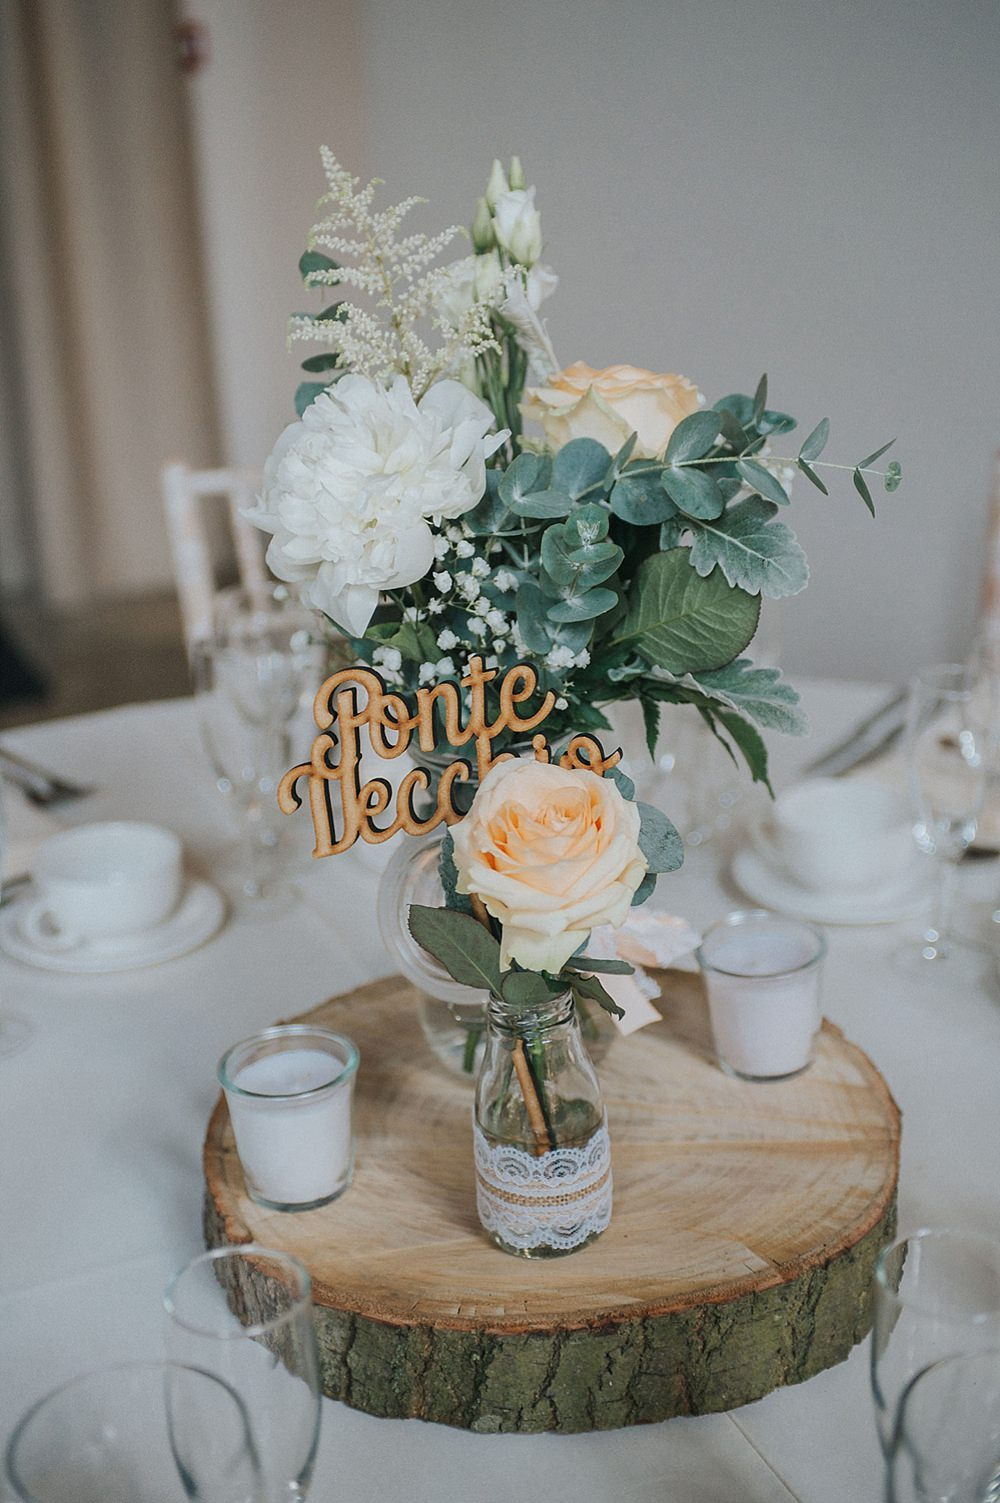 Centrepiece Table Flowers Decor Log Slice Peach Ivory Houchins Farm Wedding Julia and You Photography